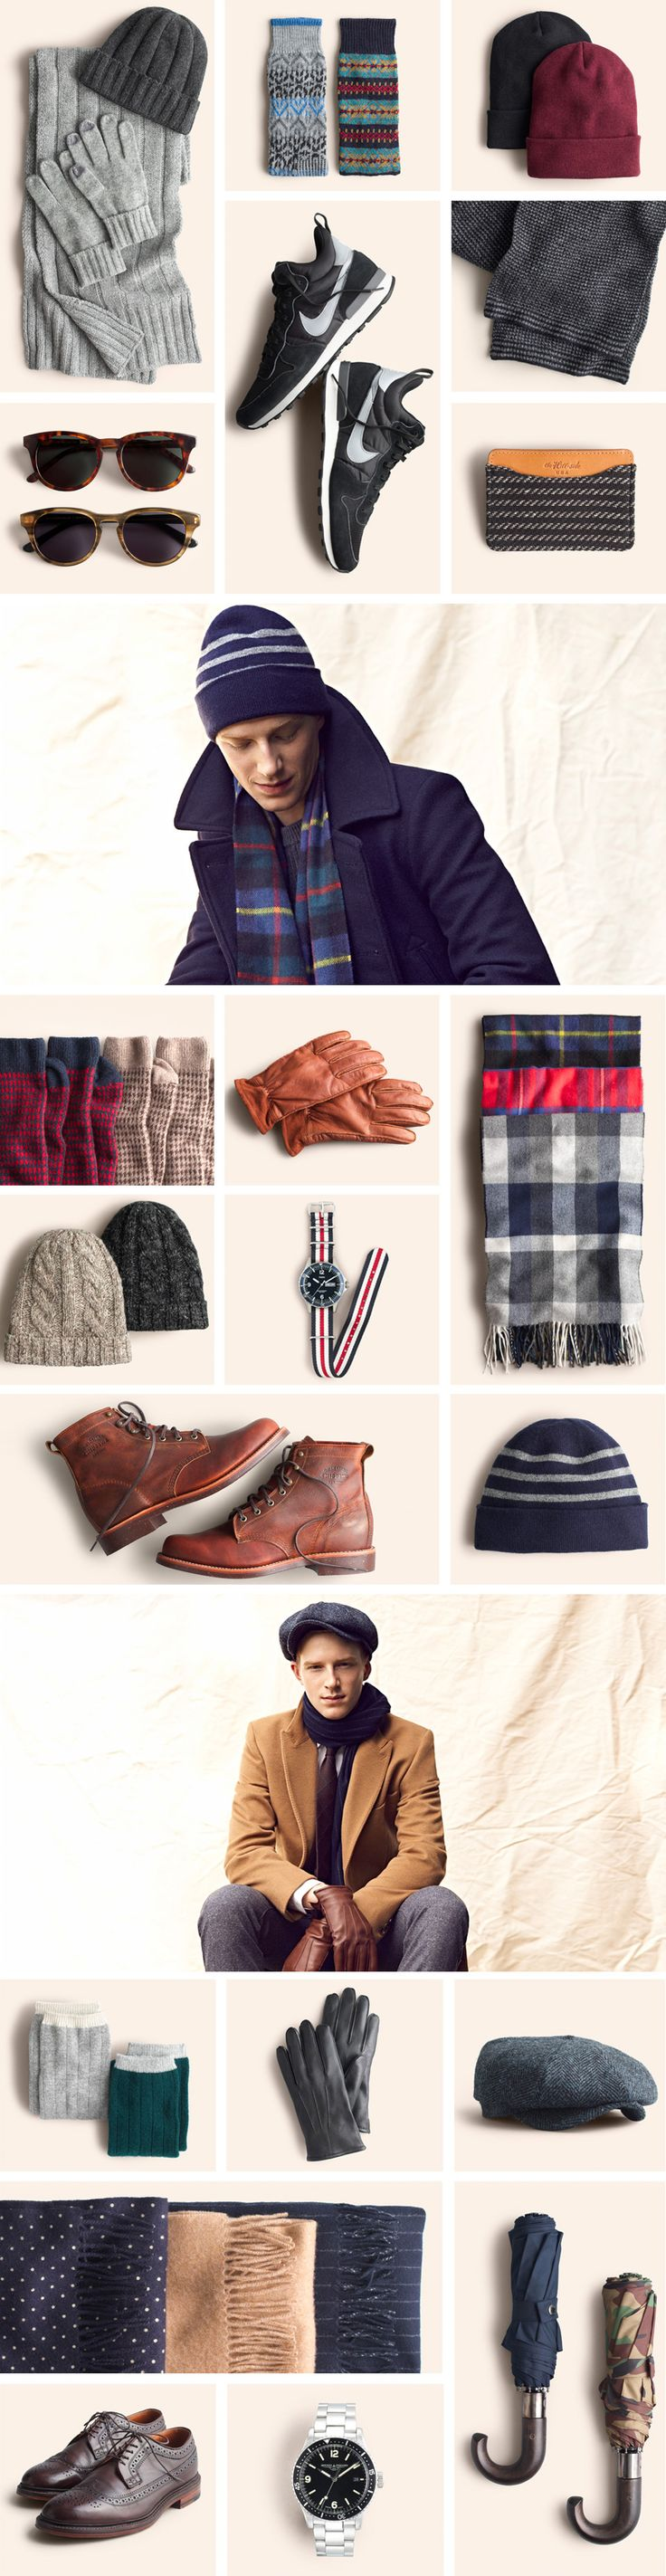 Fashion look from december 2014 featuring mens sweatshirts mens - Fashion Look From December 2014 Featuring Mens Sweatshirts Mens Find This Pin And More On Download